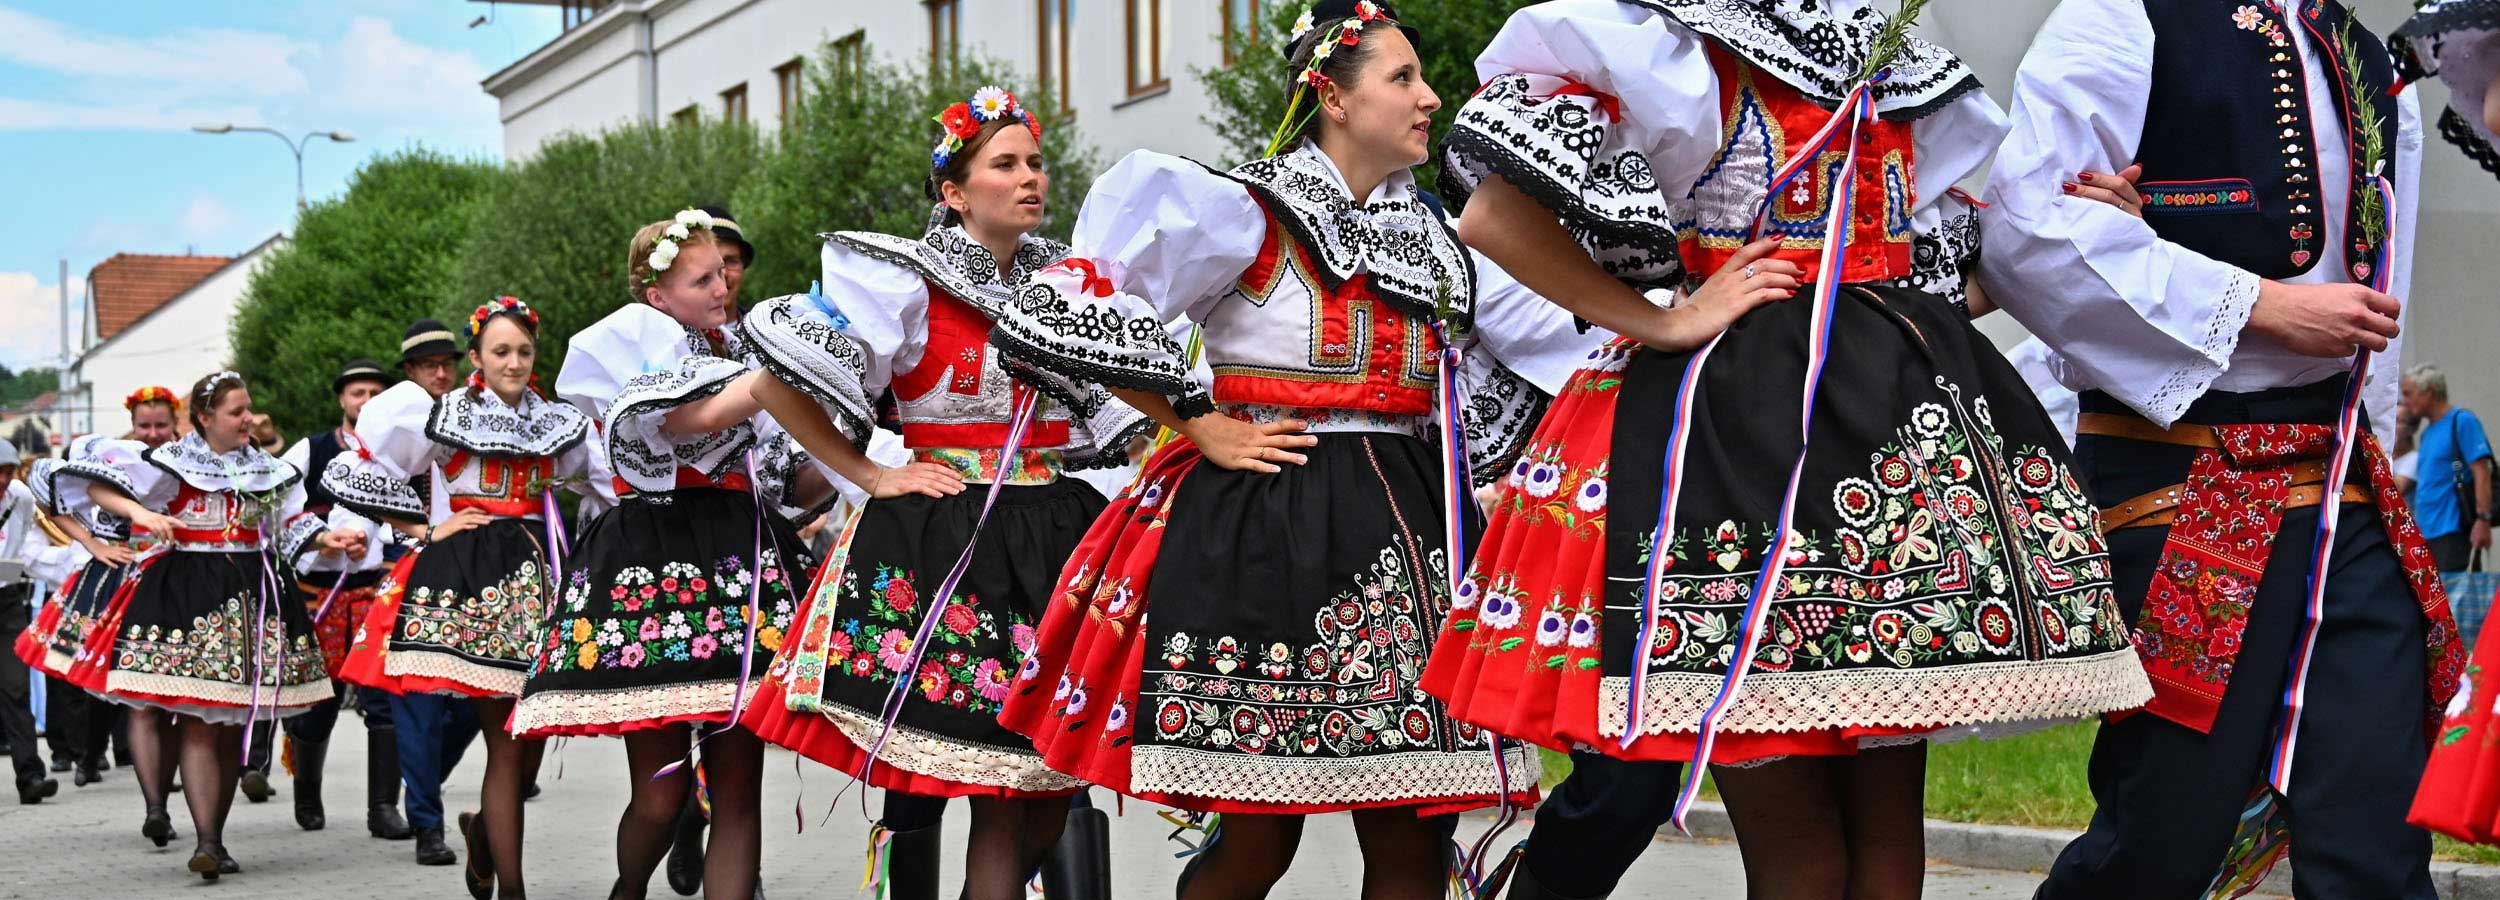 May / August: Costume Feast and Hlohovec Festival